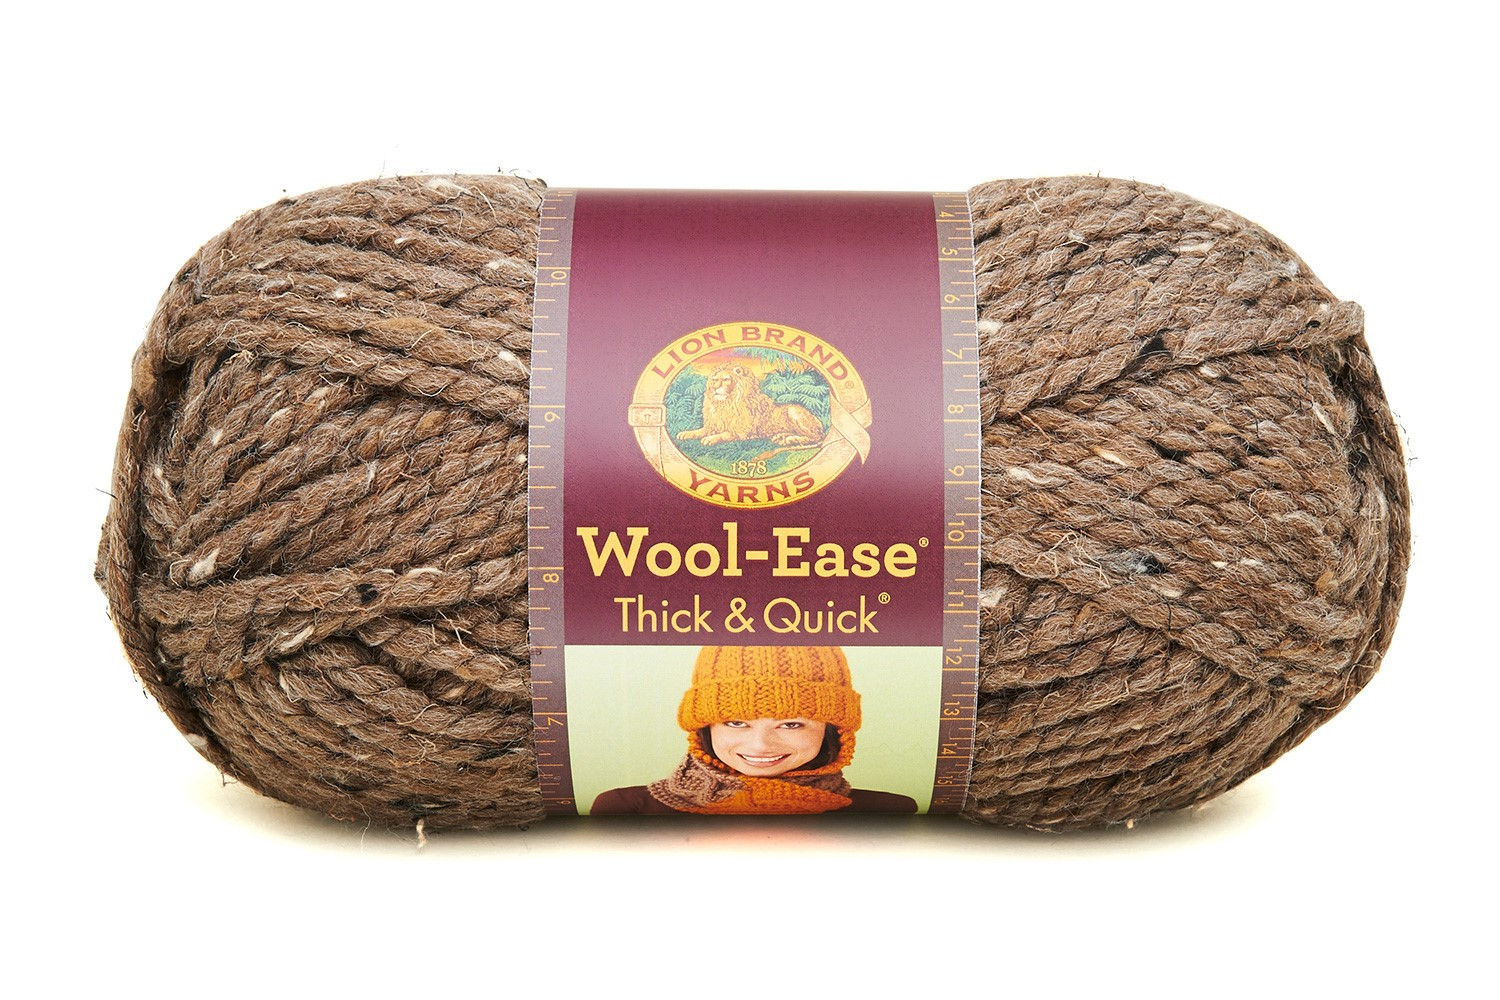 Wool Ease Thick & Quick Yarn Barley